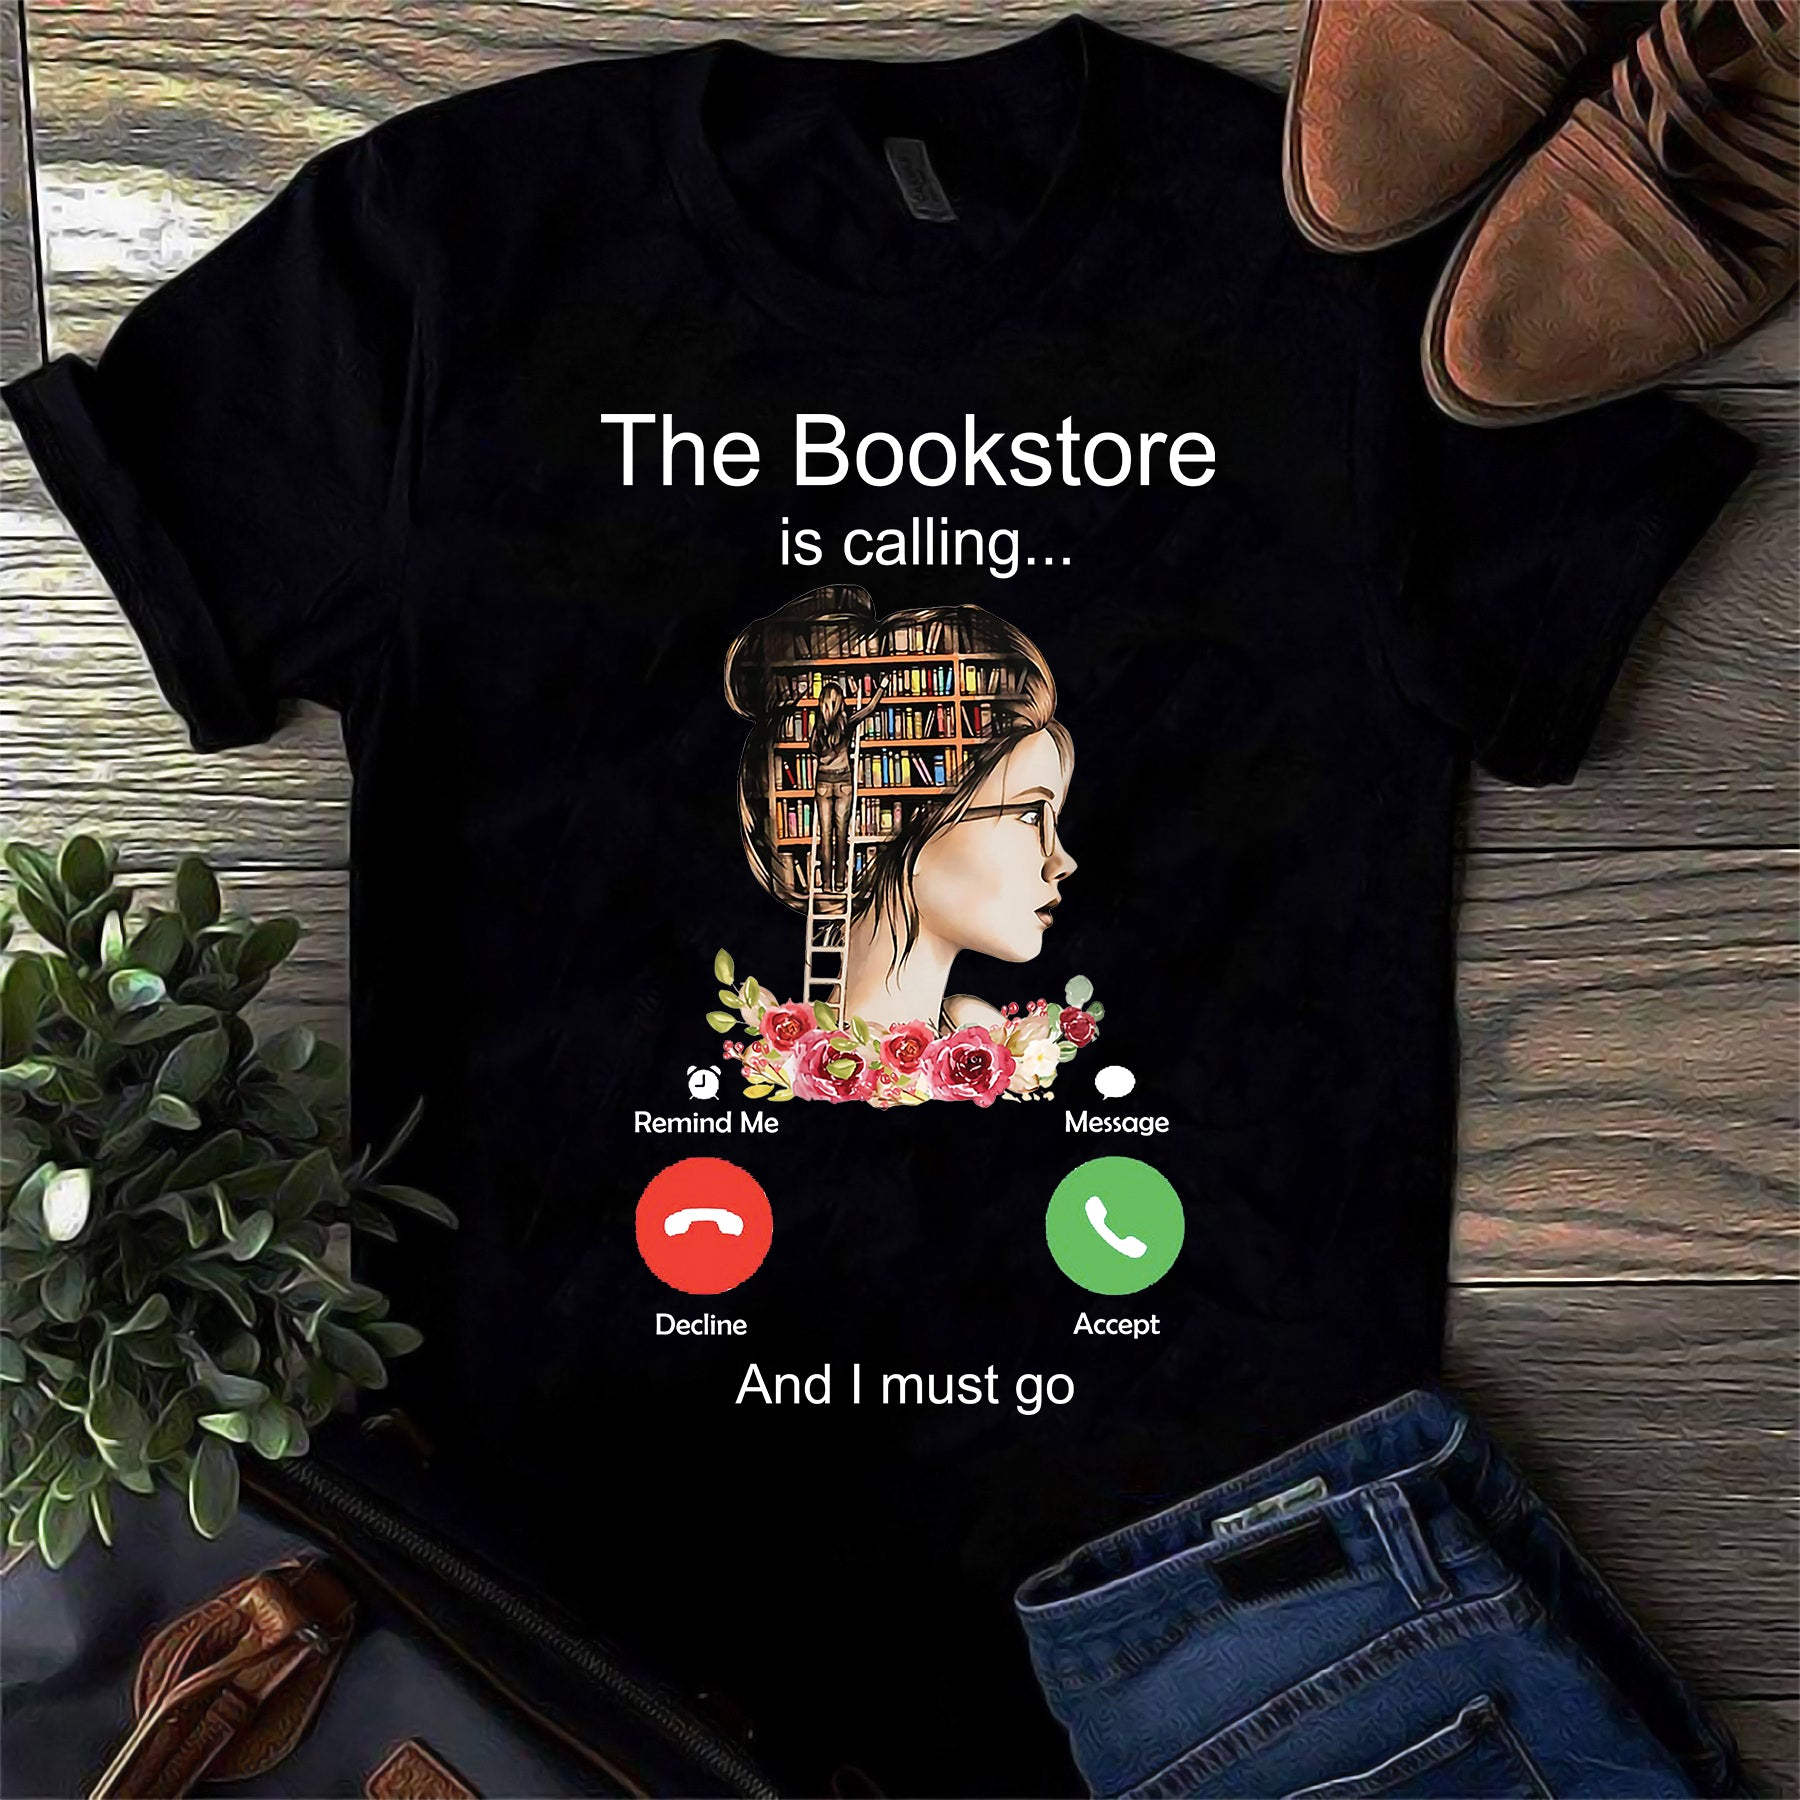 The Bookstore is calling And I must go T-shirt/ Tank/ Hoodie/ Sweatshirt